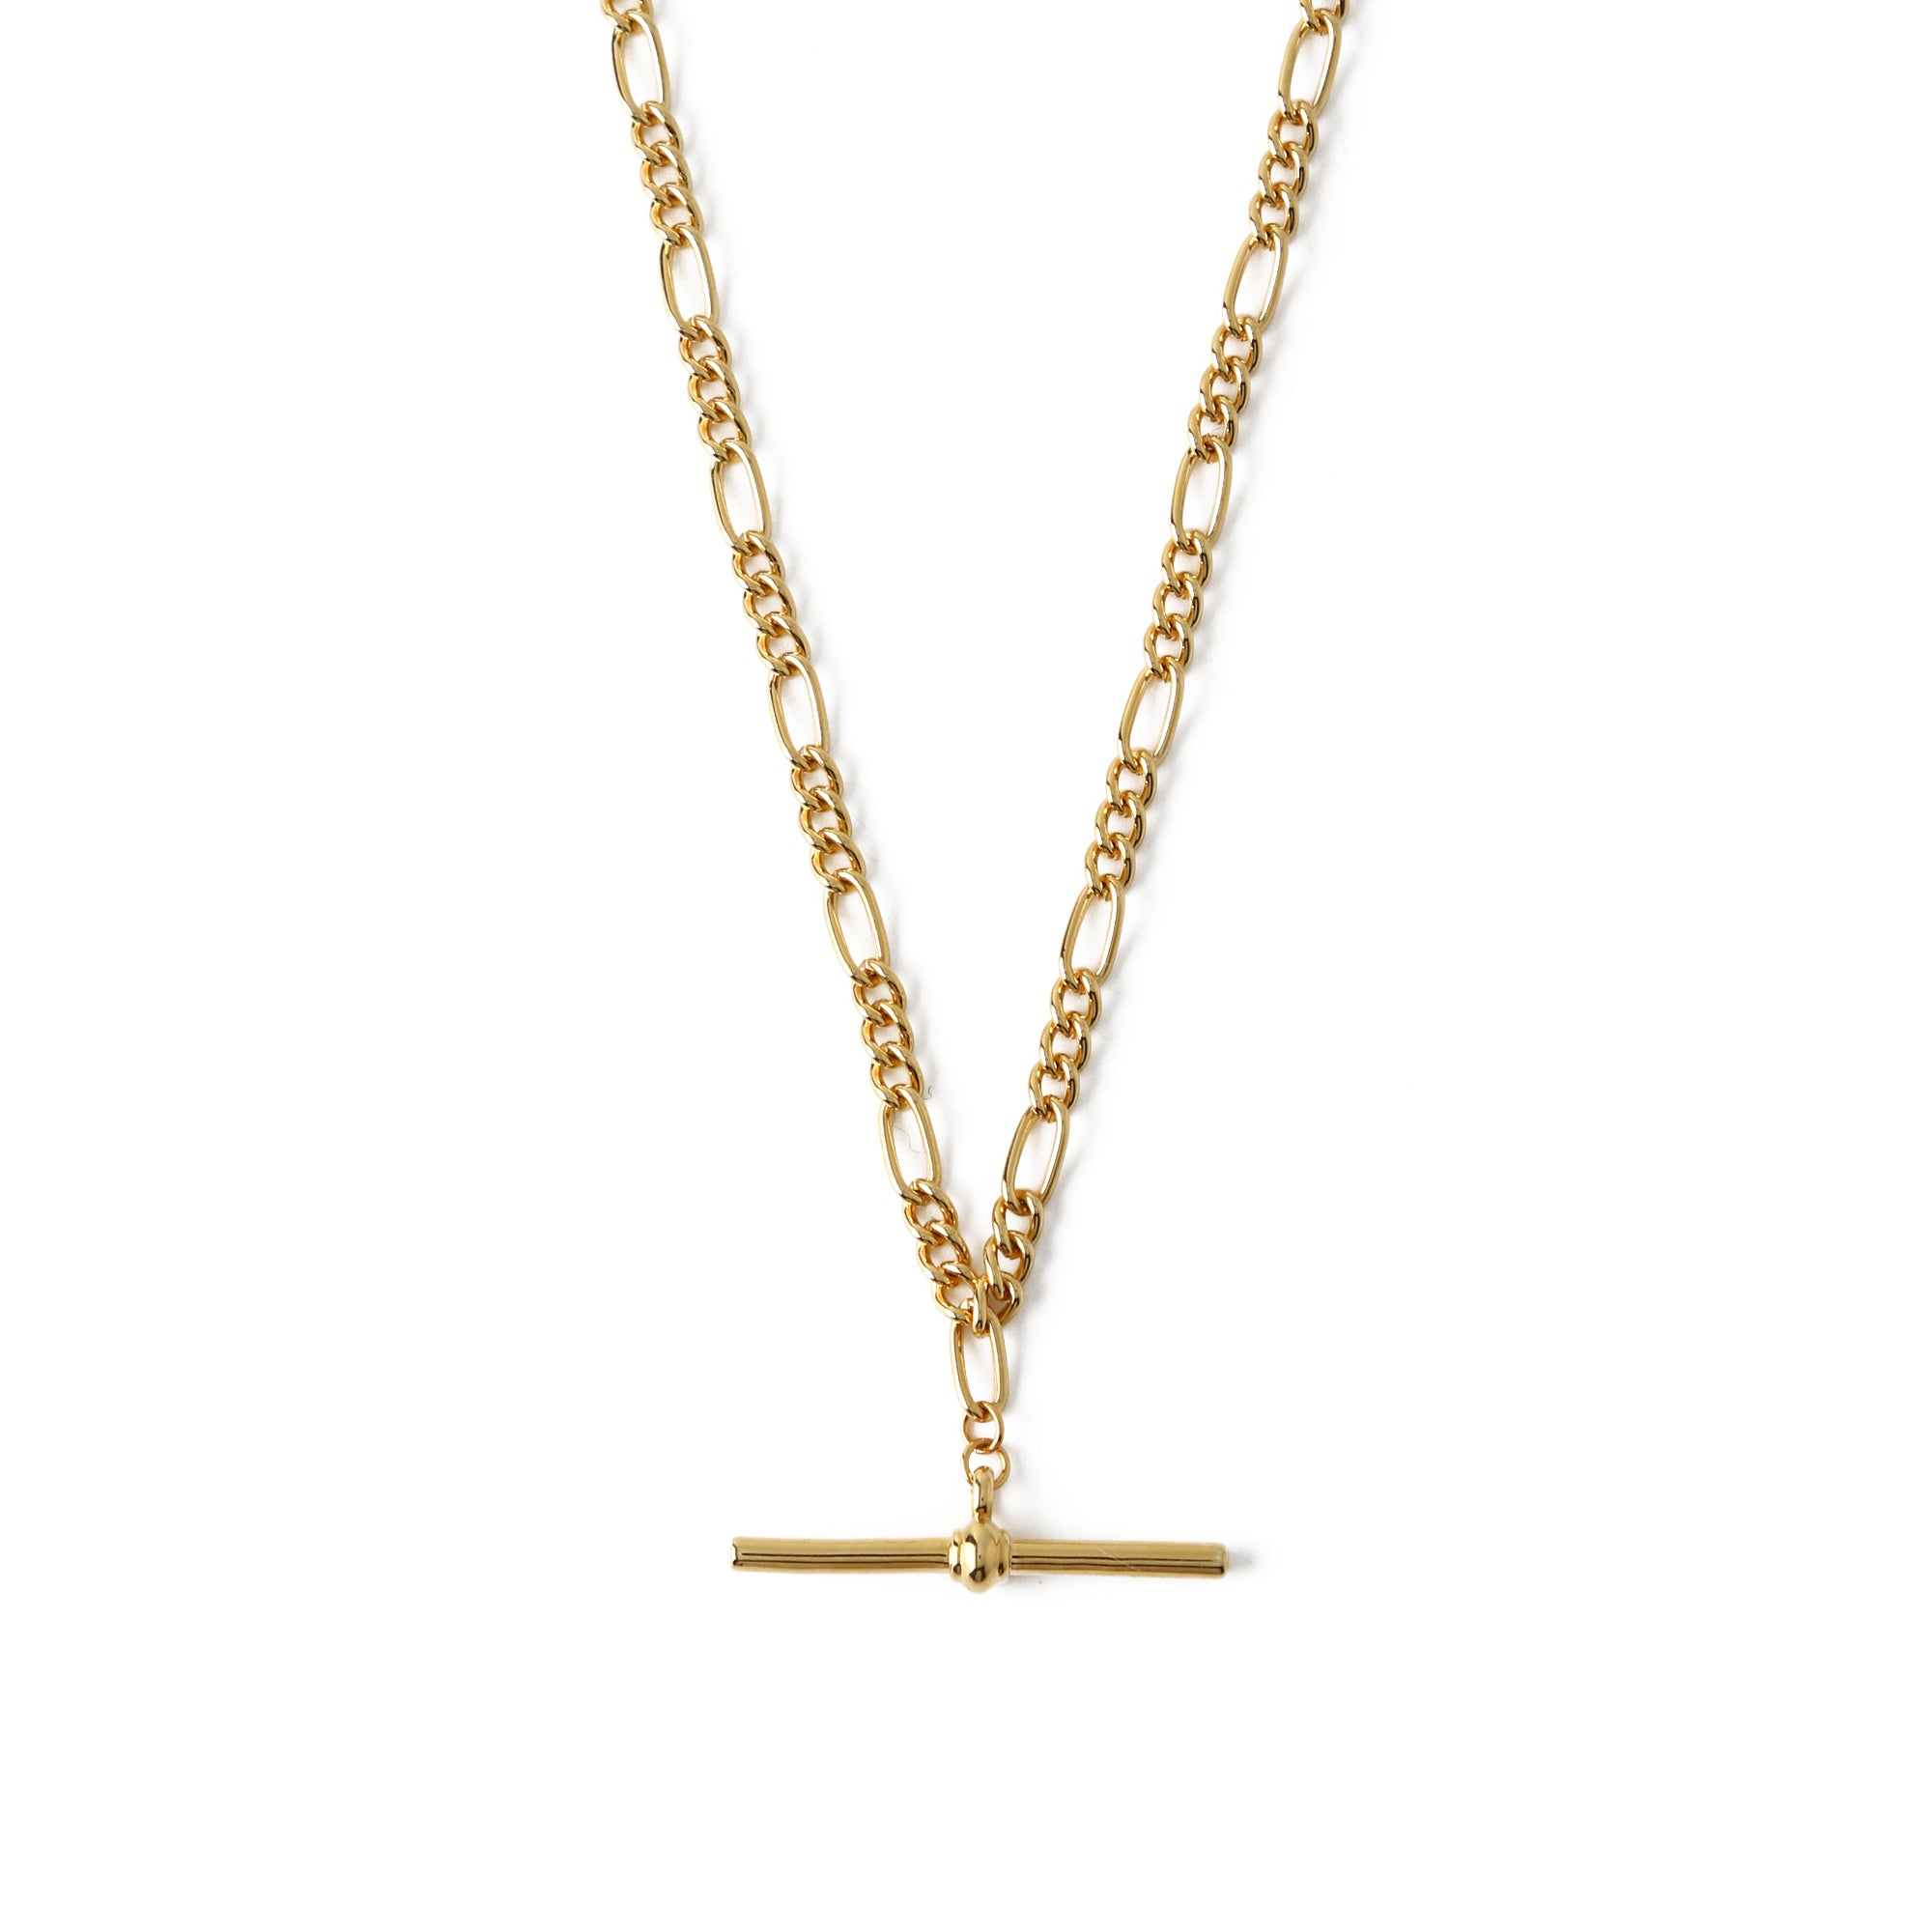 Chunky T-Bar Figaro Chain Necklace